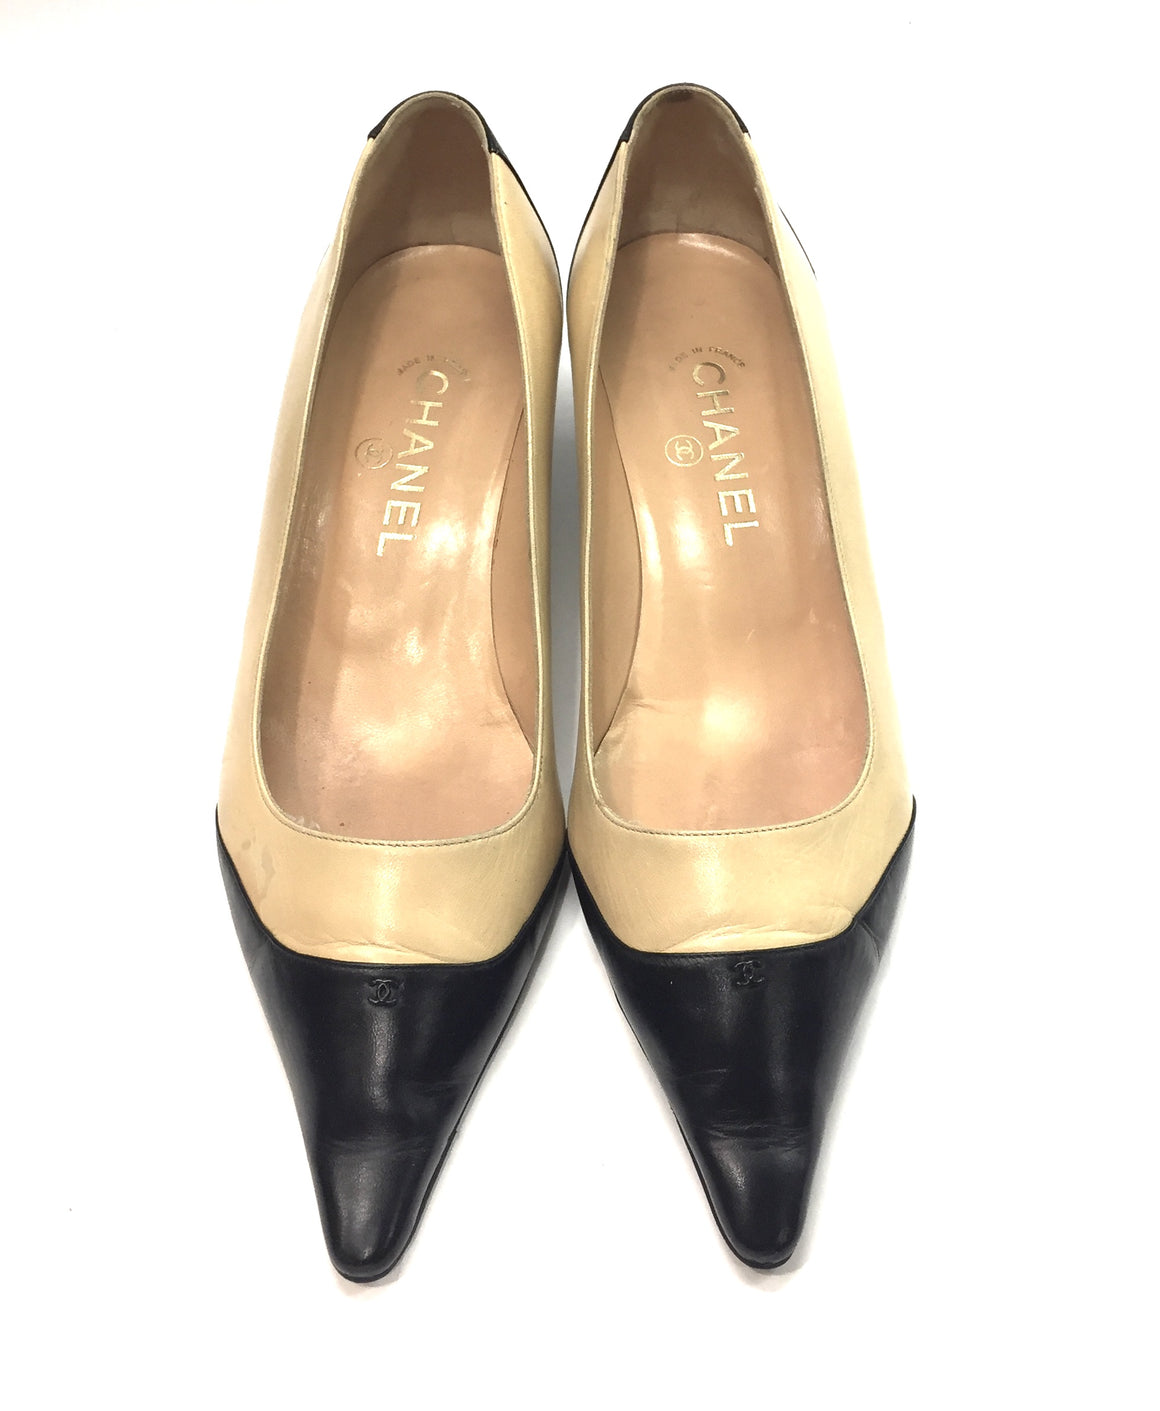 CHANEL Beige Leather Black Pointed Cap-Toe Kitten Heel Pumps Shoes Sz38/7.5